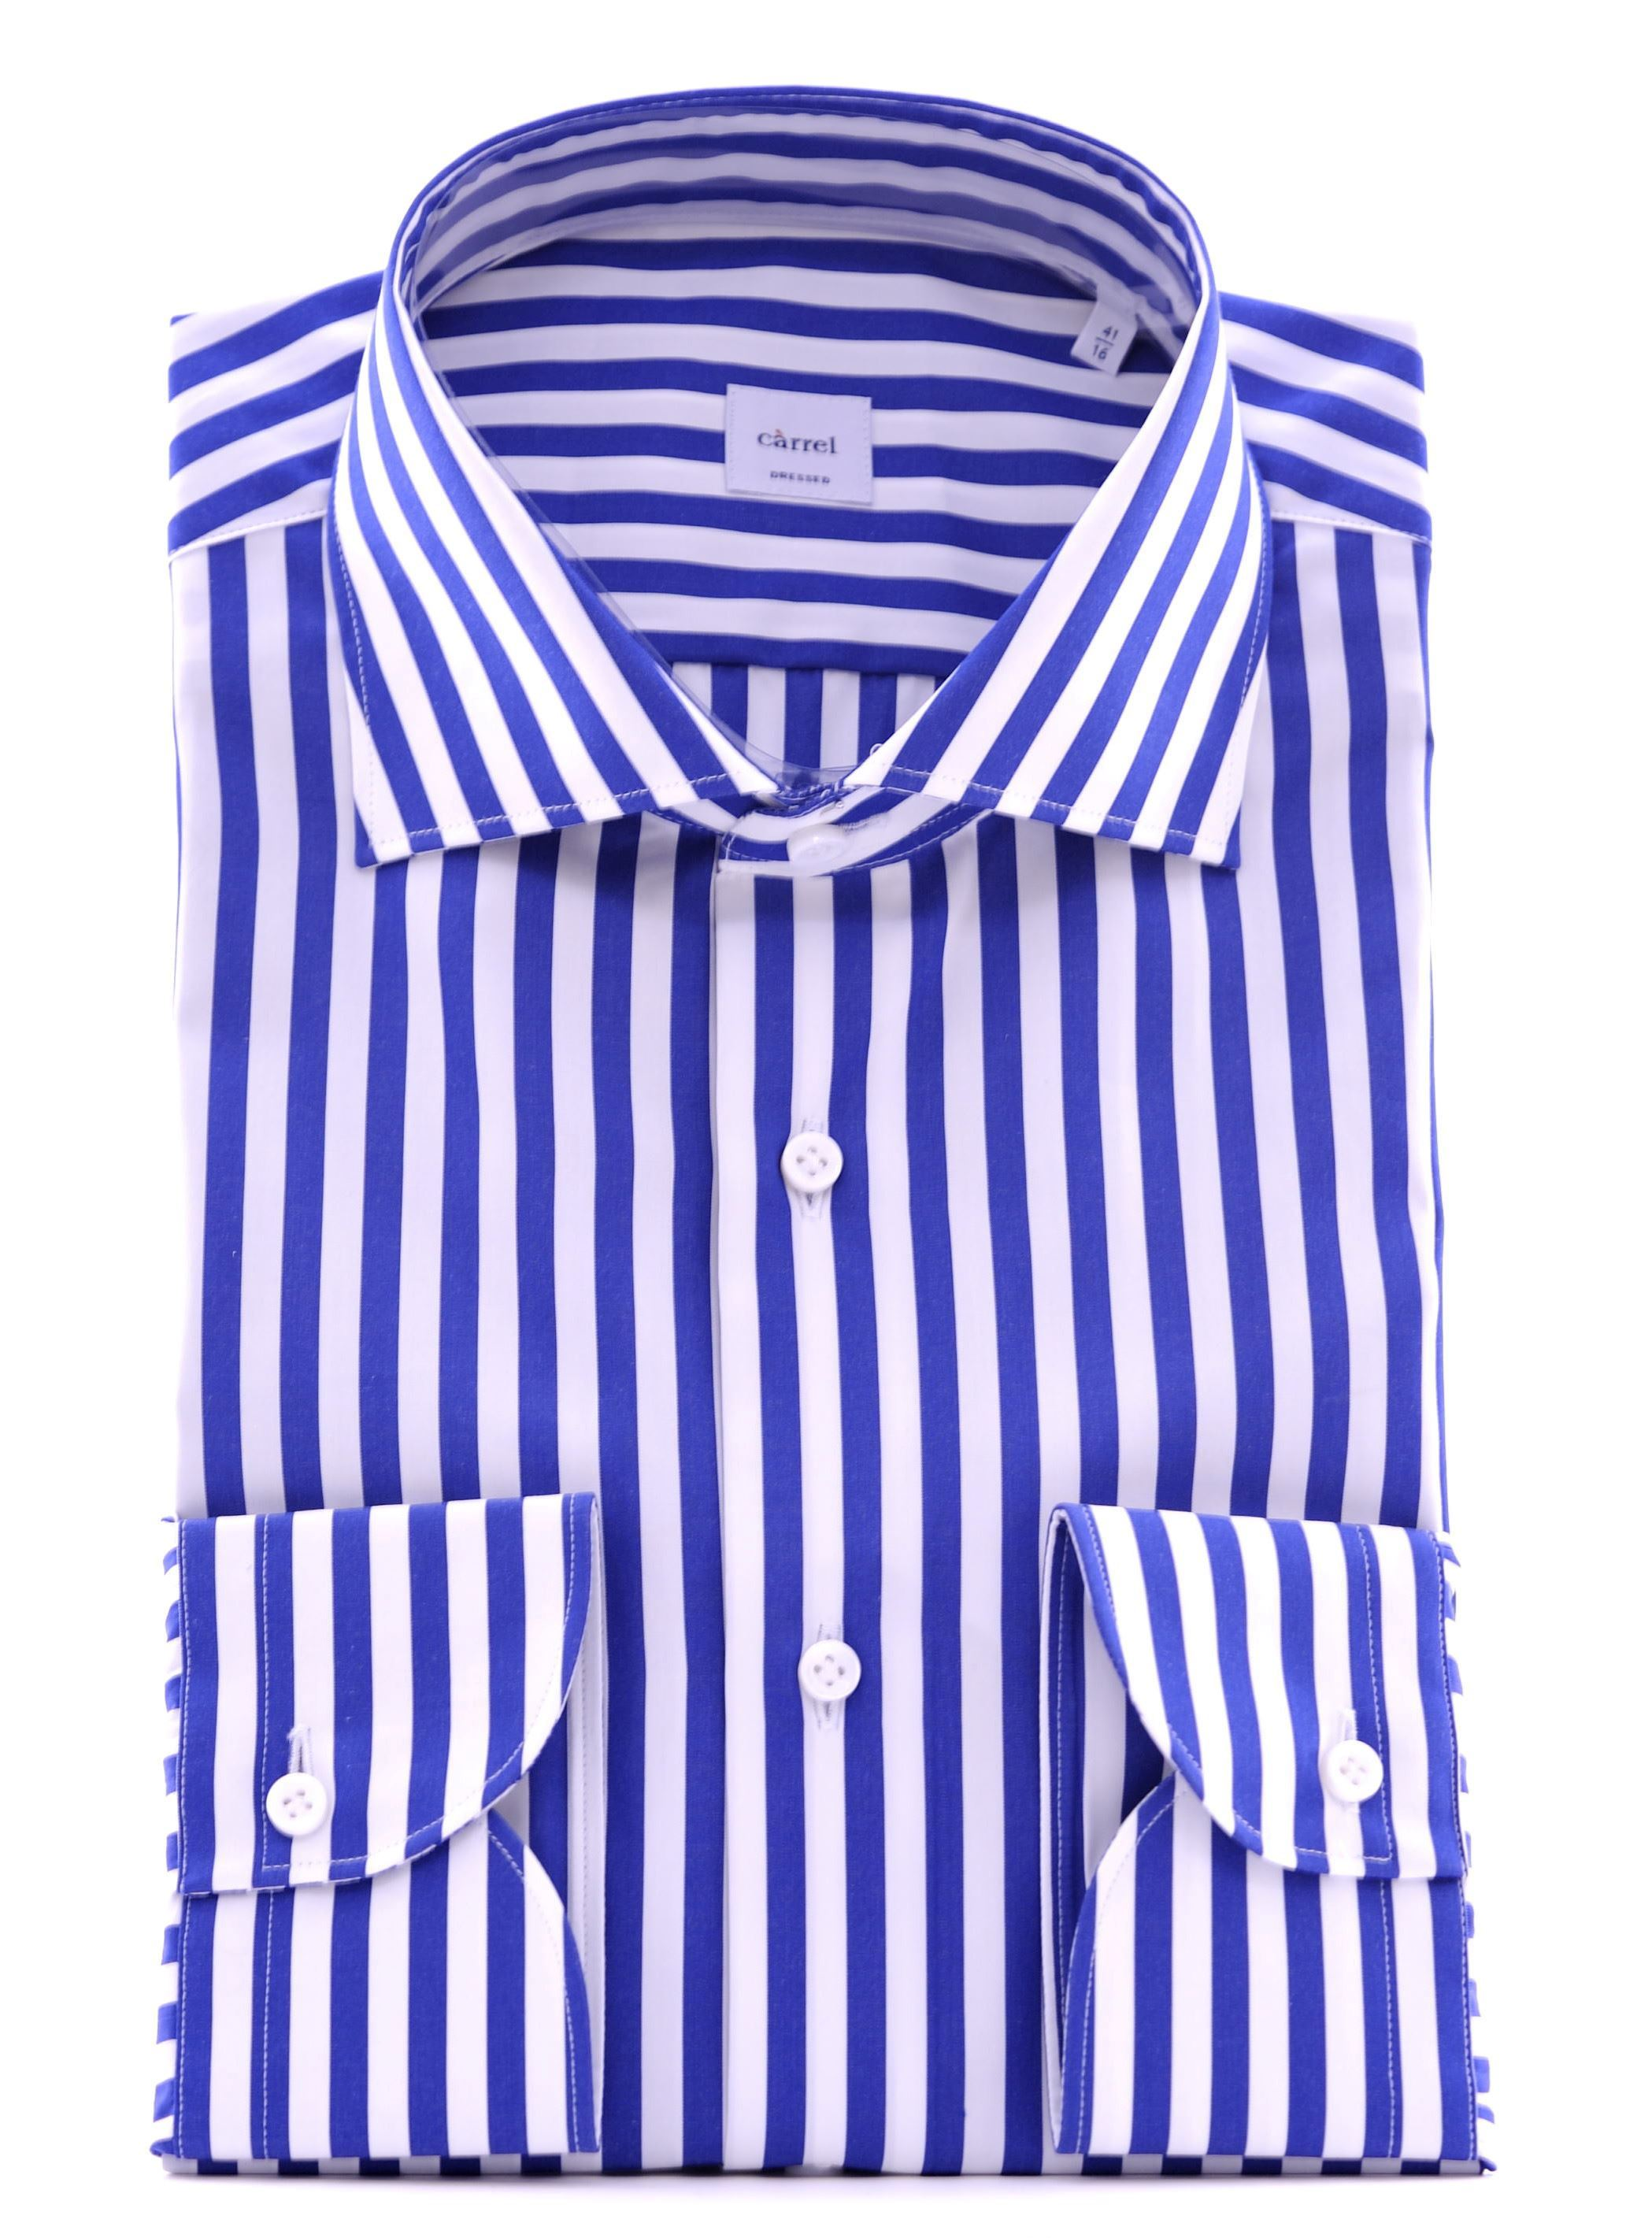 Picture of Striped shirt white background